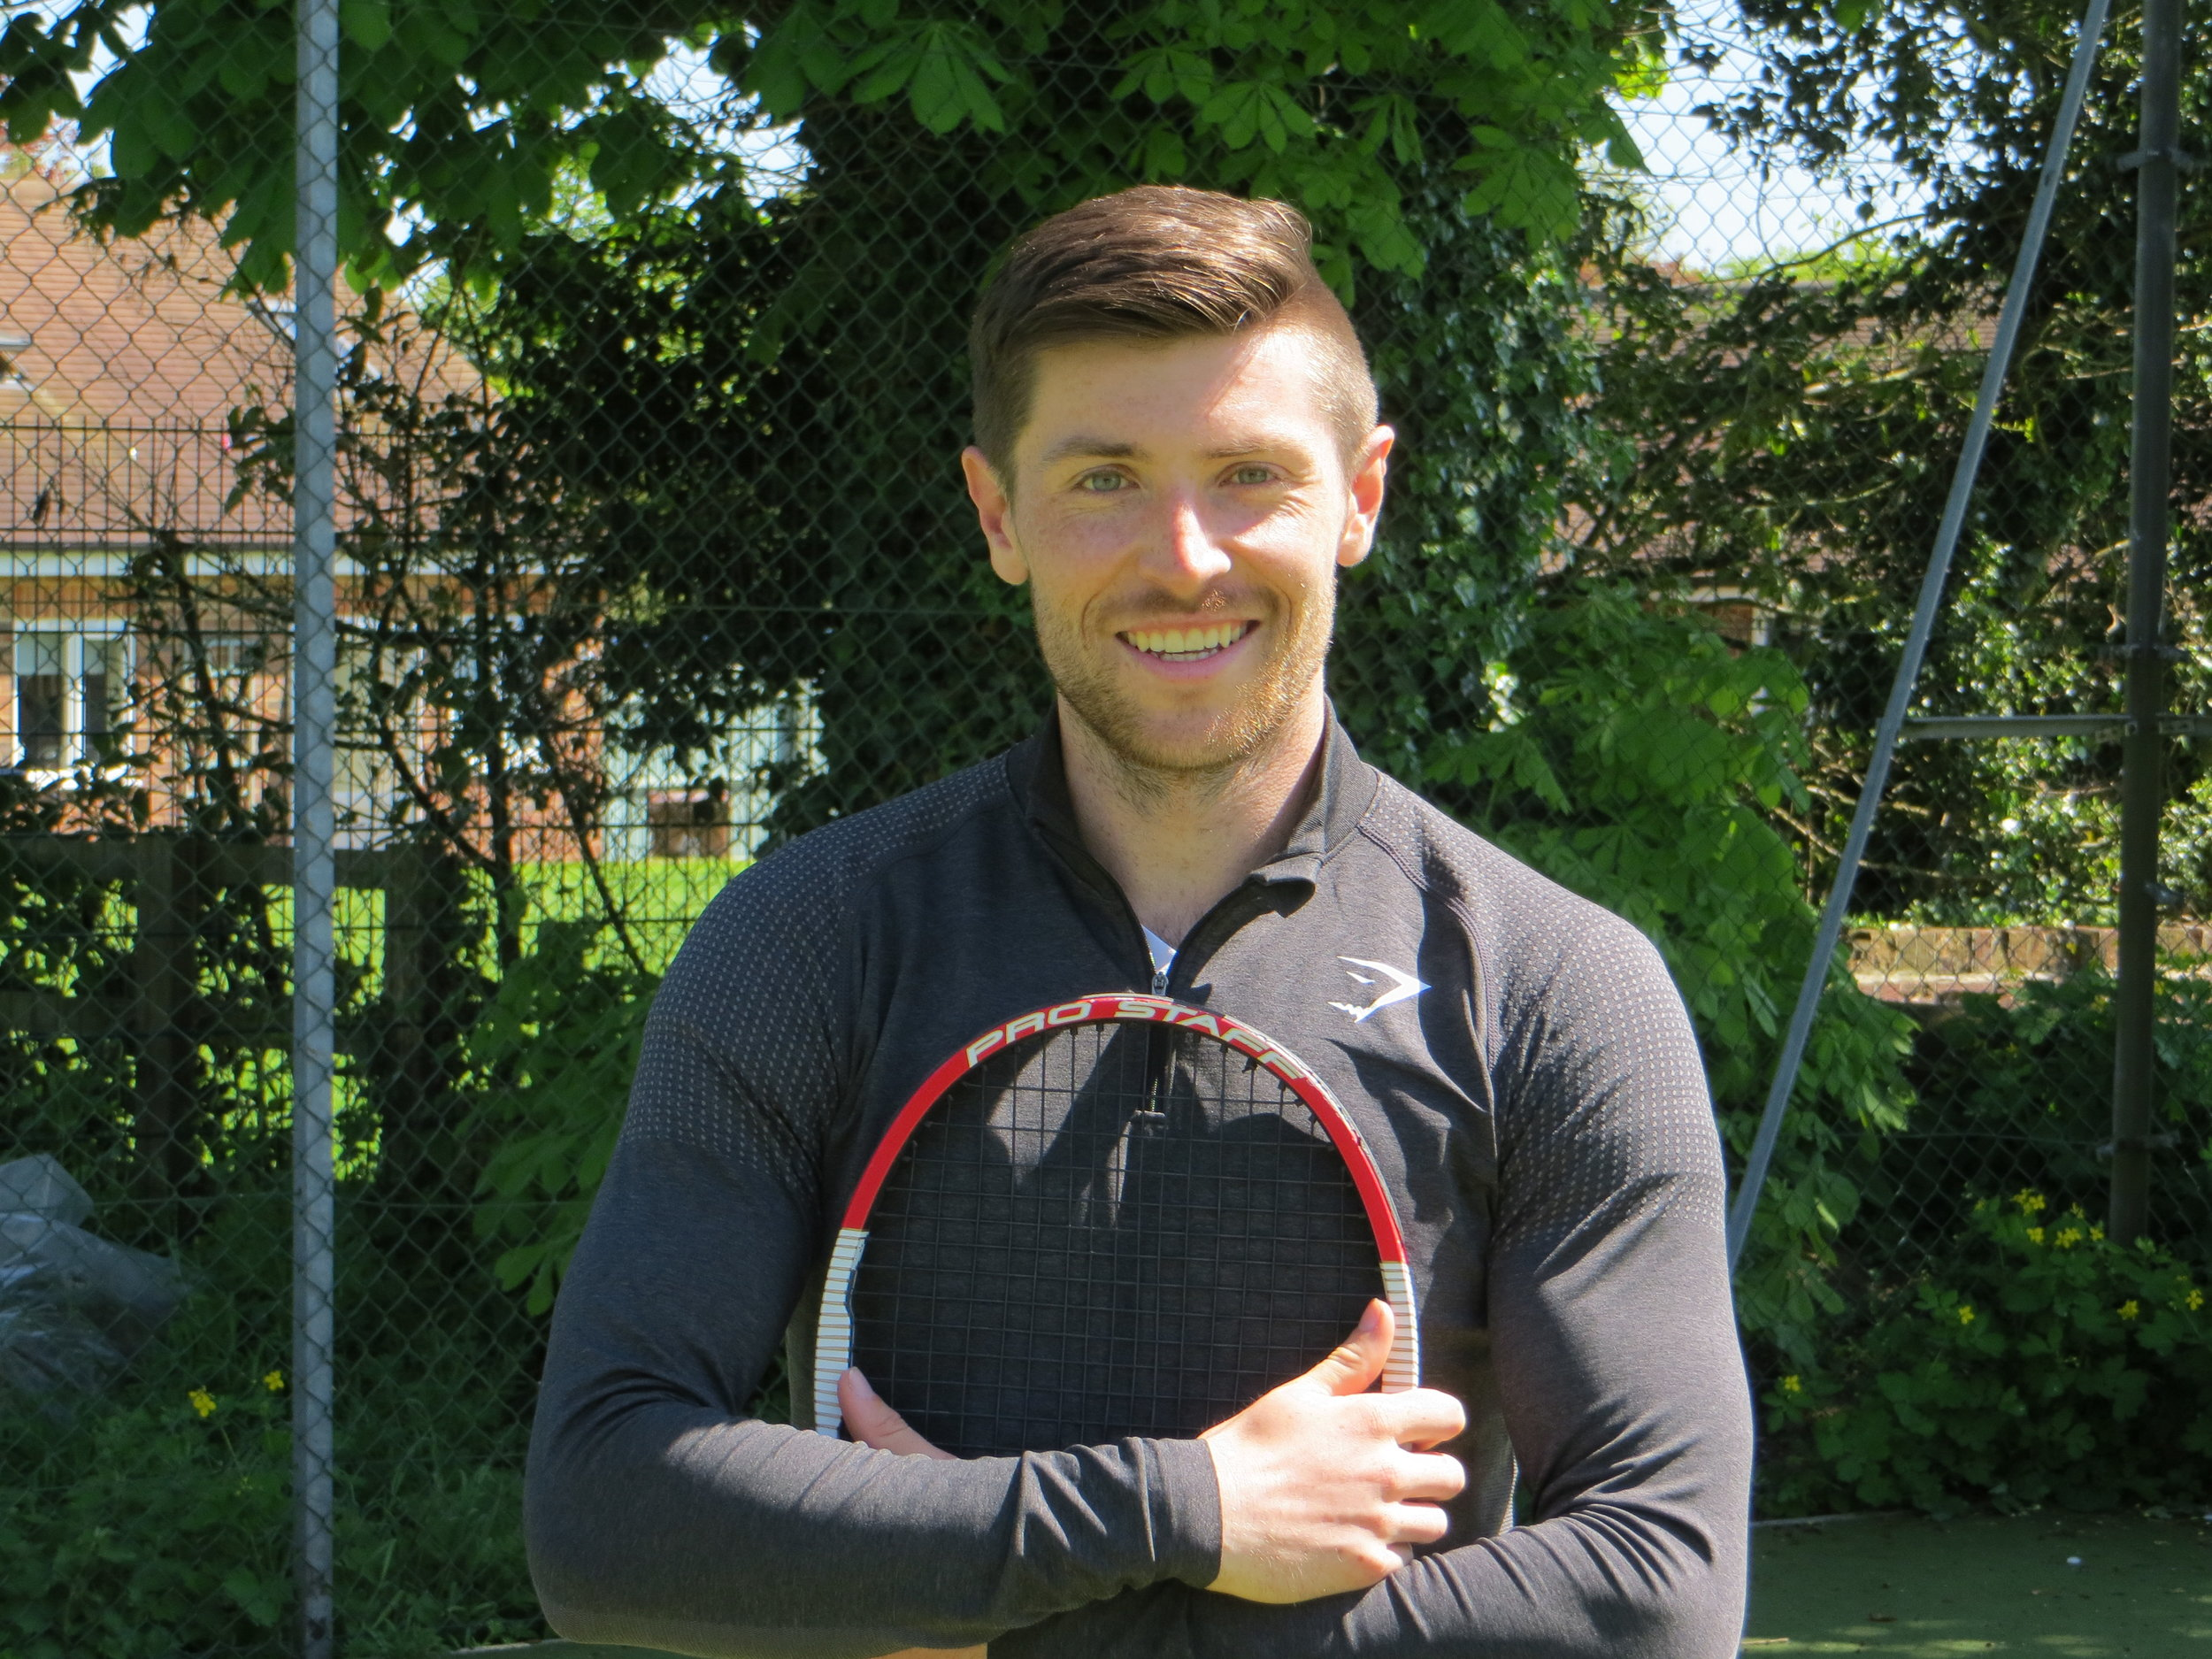 - Phil began tennis coaching at the age of 16 after leaving school. He immediately went into junior performance coaching at Great Missenden LTC, working with county juniors who have progressed to playing national and ITF tournaments. His 10 years coaching experience has taken him to places as far as Greece, coaching children and adults while on holiday. Across Buckinghamshire developing juniors from beginners to a competitive level. To Bristol, where as head performance coach he jointly led an academy program, taking promising juniors to county and national tournaments within two years and to Norfolk, where alongside developing his own game, he coached national and ITF level juniors.Phil has grown up within competitive tennis, reaching a career high GB men's ranking of 157 in the country. In doing so, he travelled around the country competing in Grade 1 and 2 British Tour events.Phil is excited by the prospect of joining the established program at Aspire2Tennis, taking the experience he has to encourage juniors to compete and motivate them to become the best tennis players they can be.